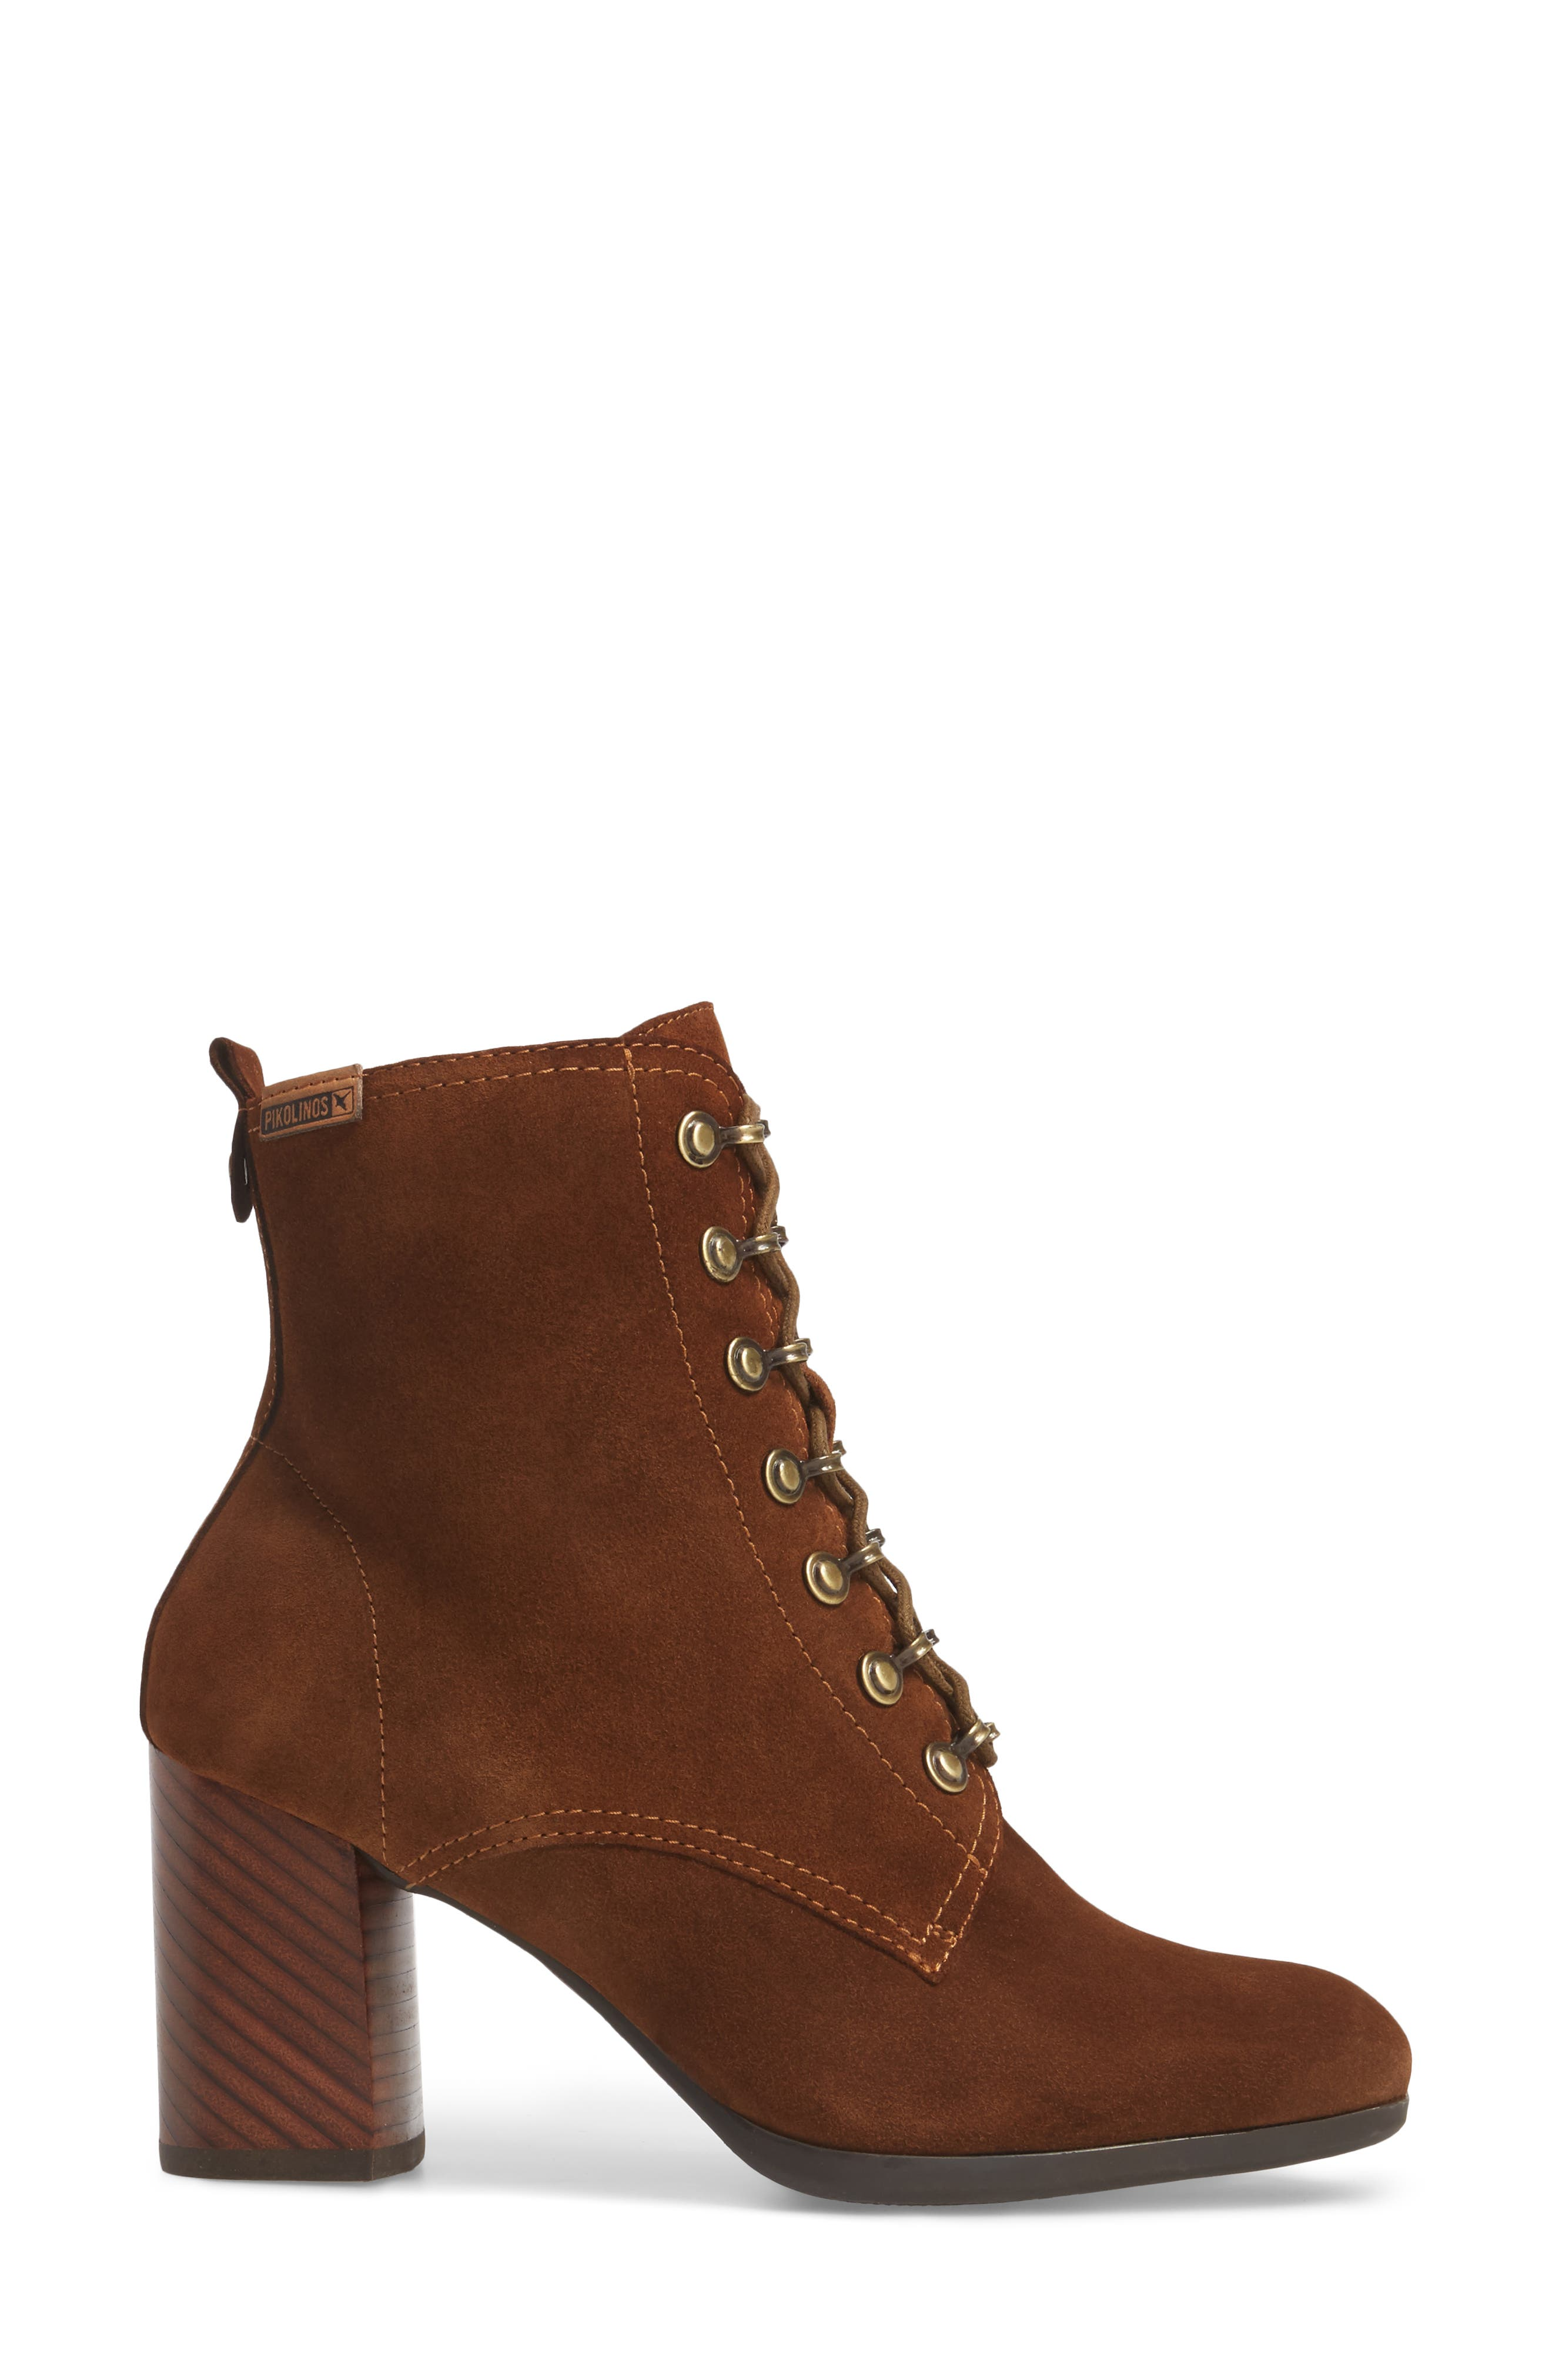 Aragon Lace-Up Boot,                             Alternate thumbnail 3, color,                             200